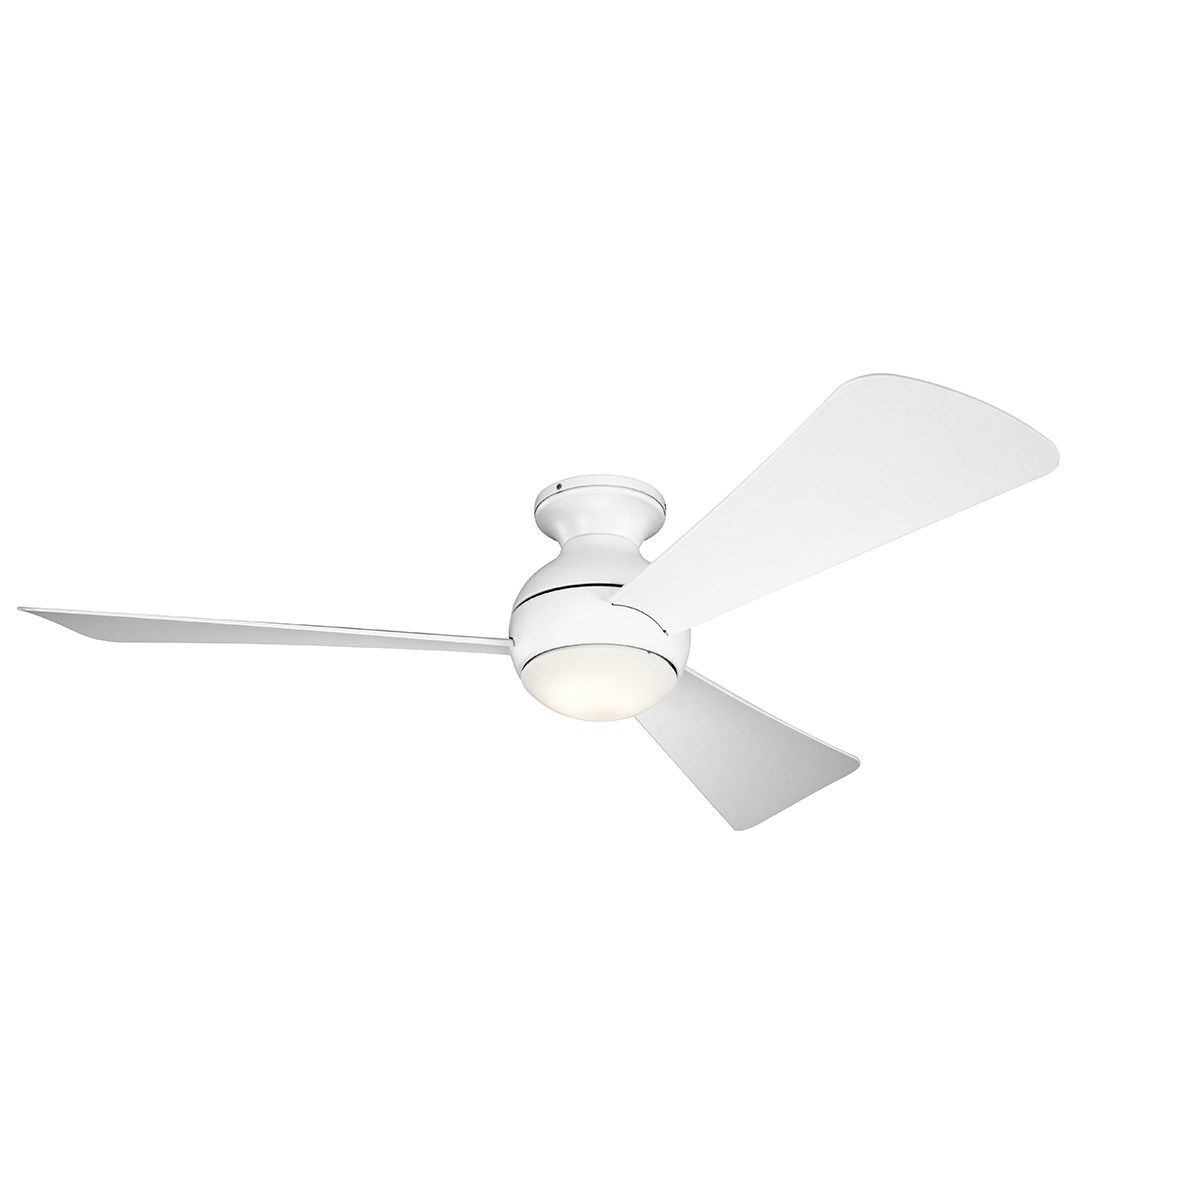 "Sola LED 54"" Fan Matte White"